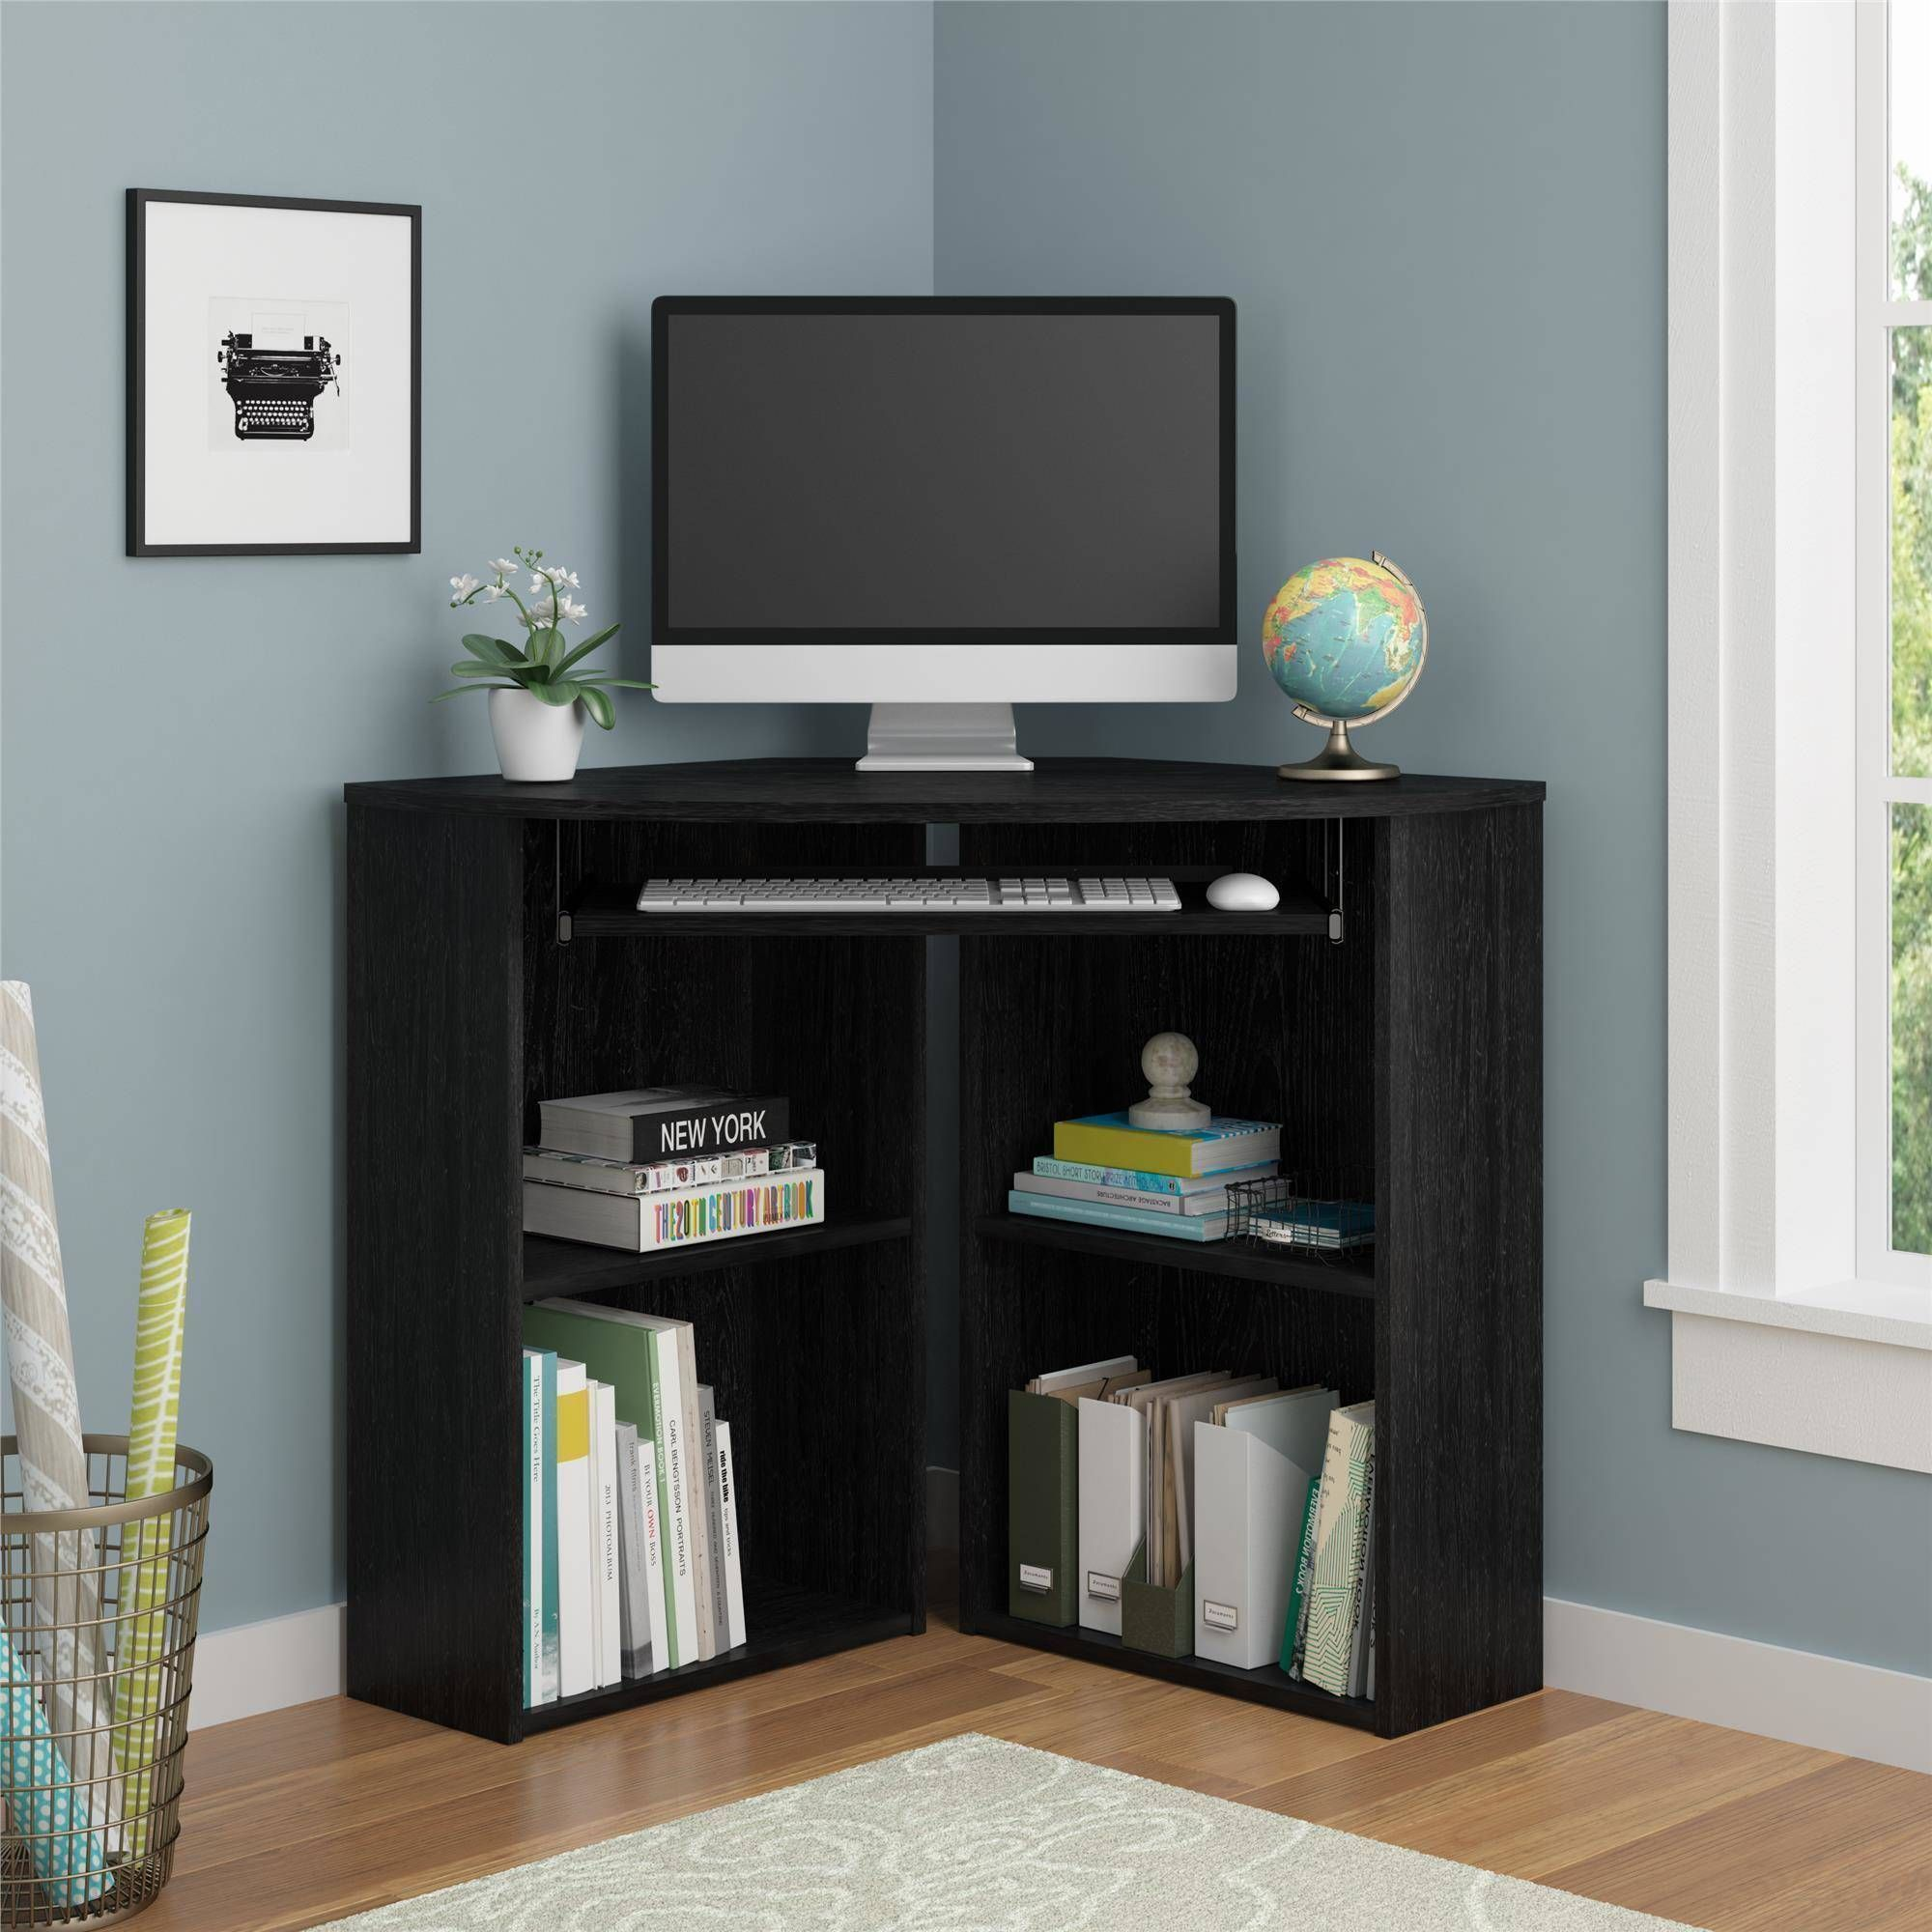 - 23 Best Desks For Small Spaces - Small Modern Desks